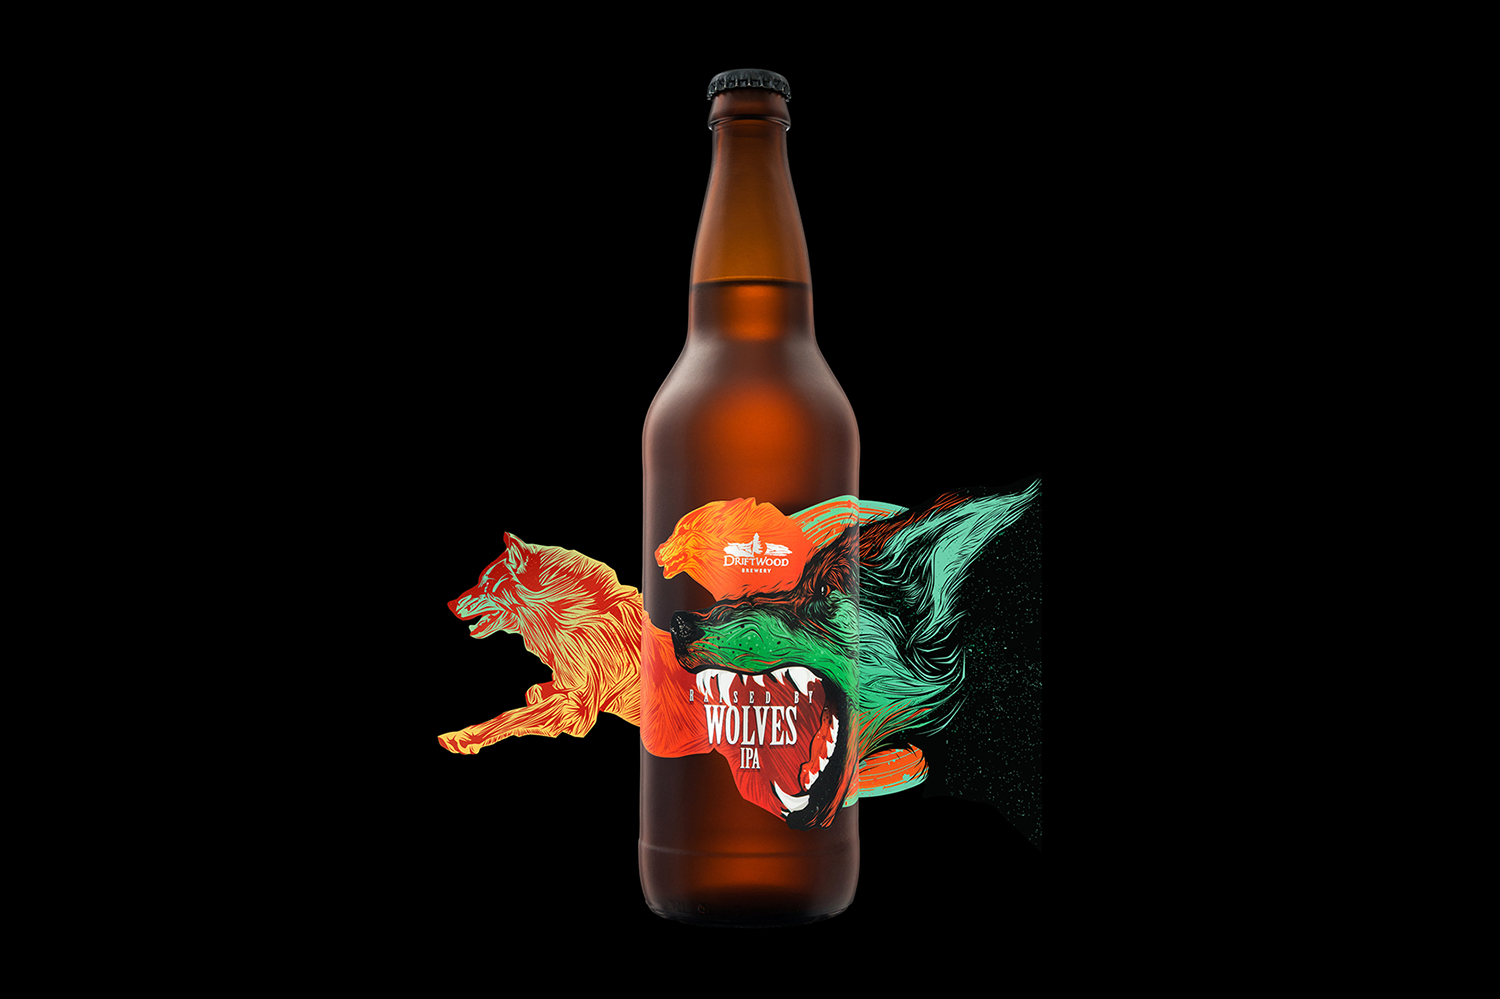 Driftwood Brewery Presents New Raised by Wolves IPA